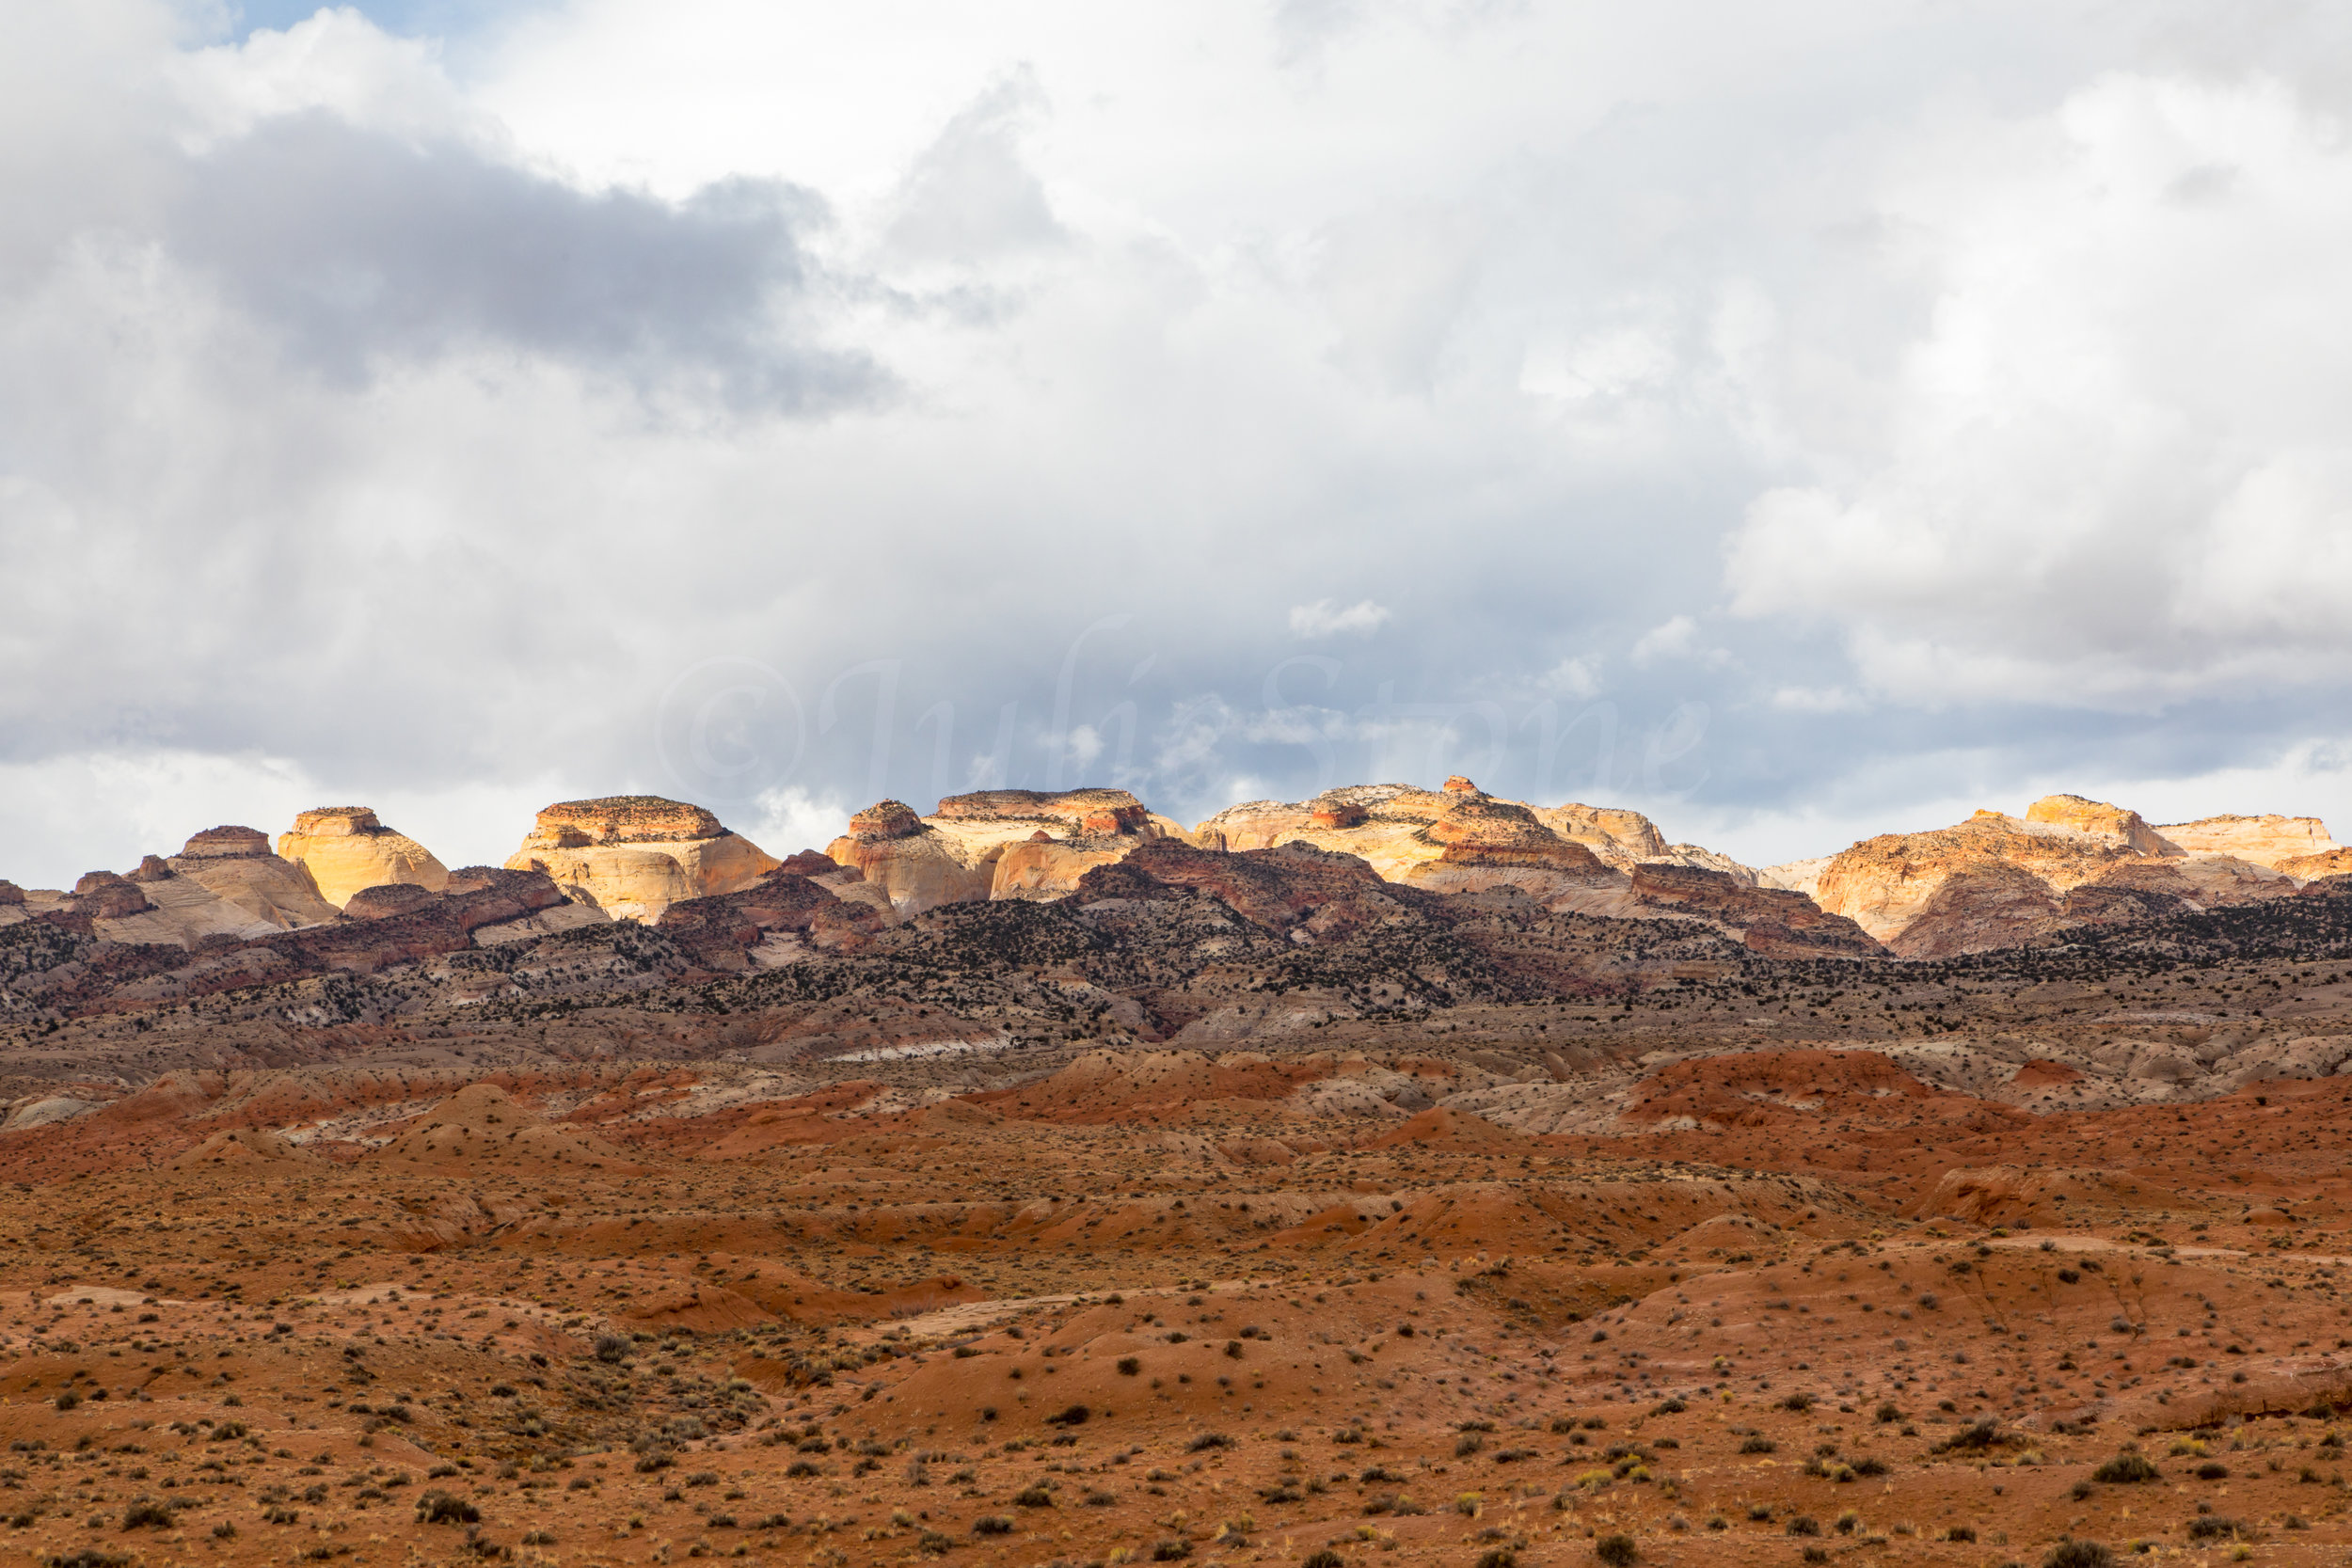 Capitol Reef National Park, Image # 9558